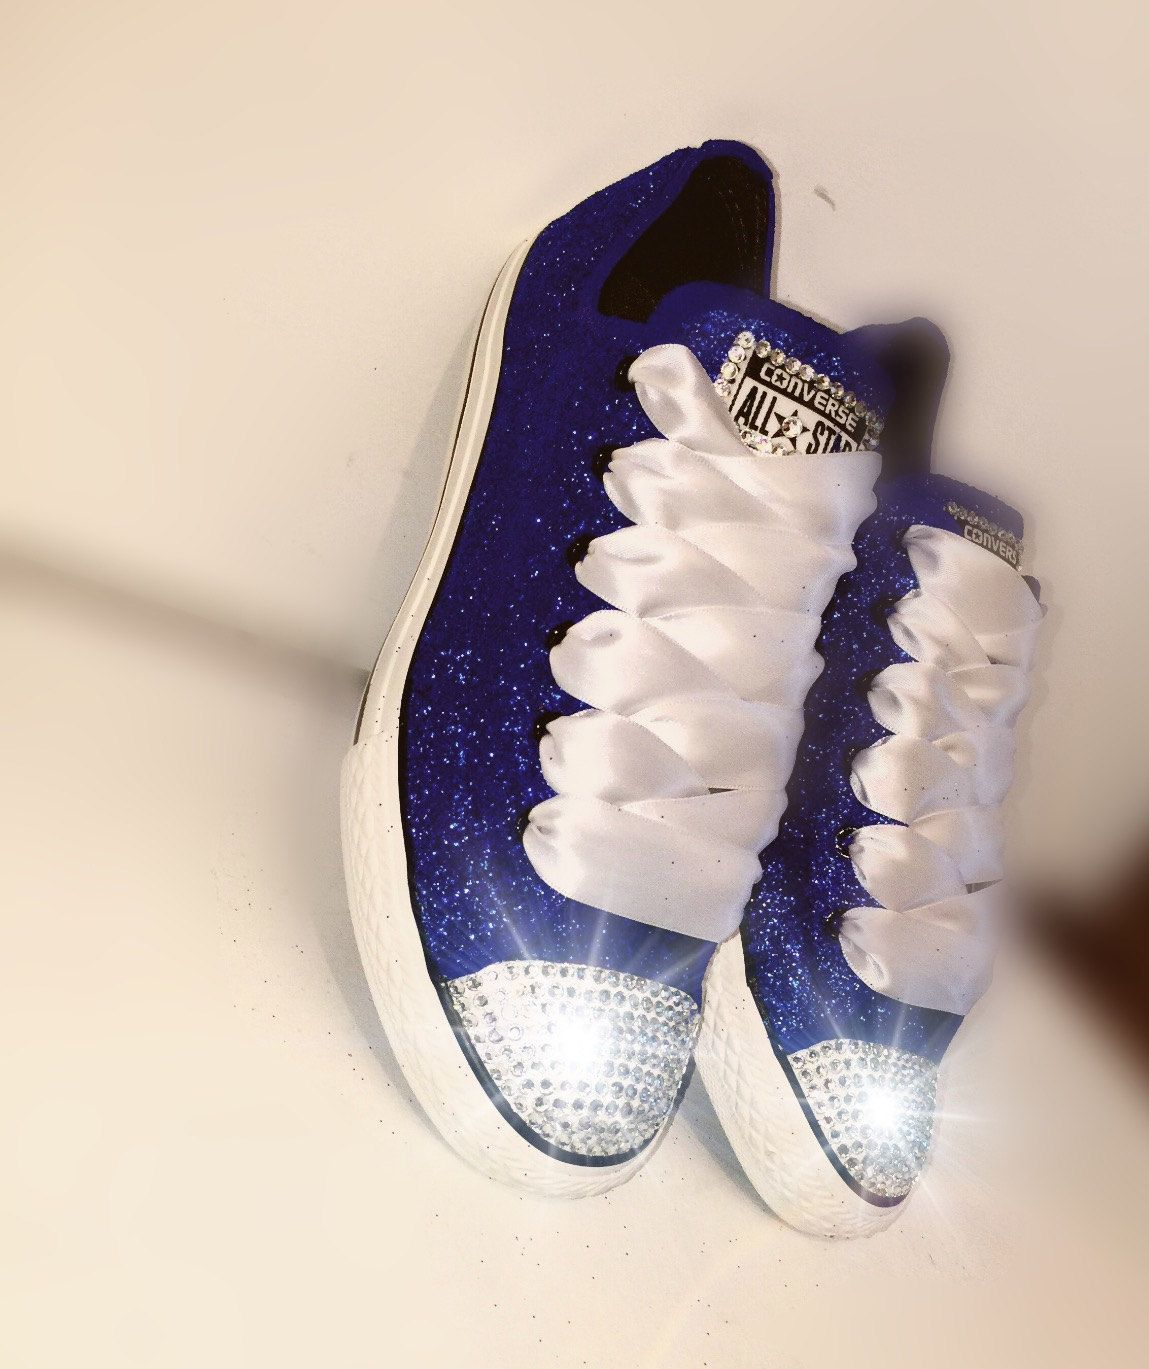 1ef42ba6e0be Women s Converse all star shoes handmade Sparkly glitter navy blue chucks  sneakers tennis wedding bride prom dance something blue by CrystalCleatss  on Etsy ...